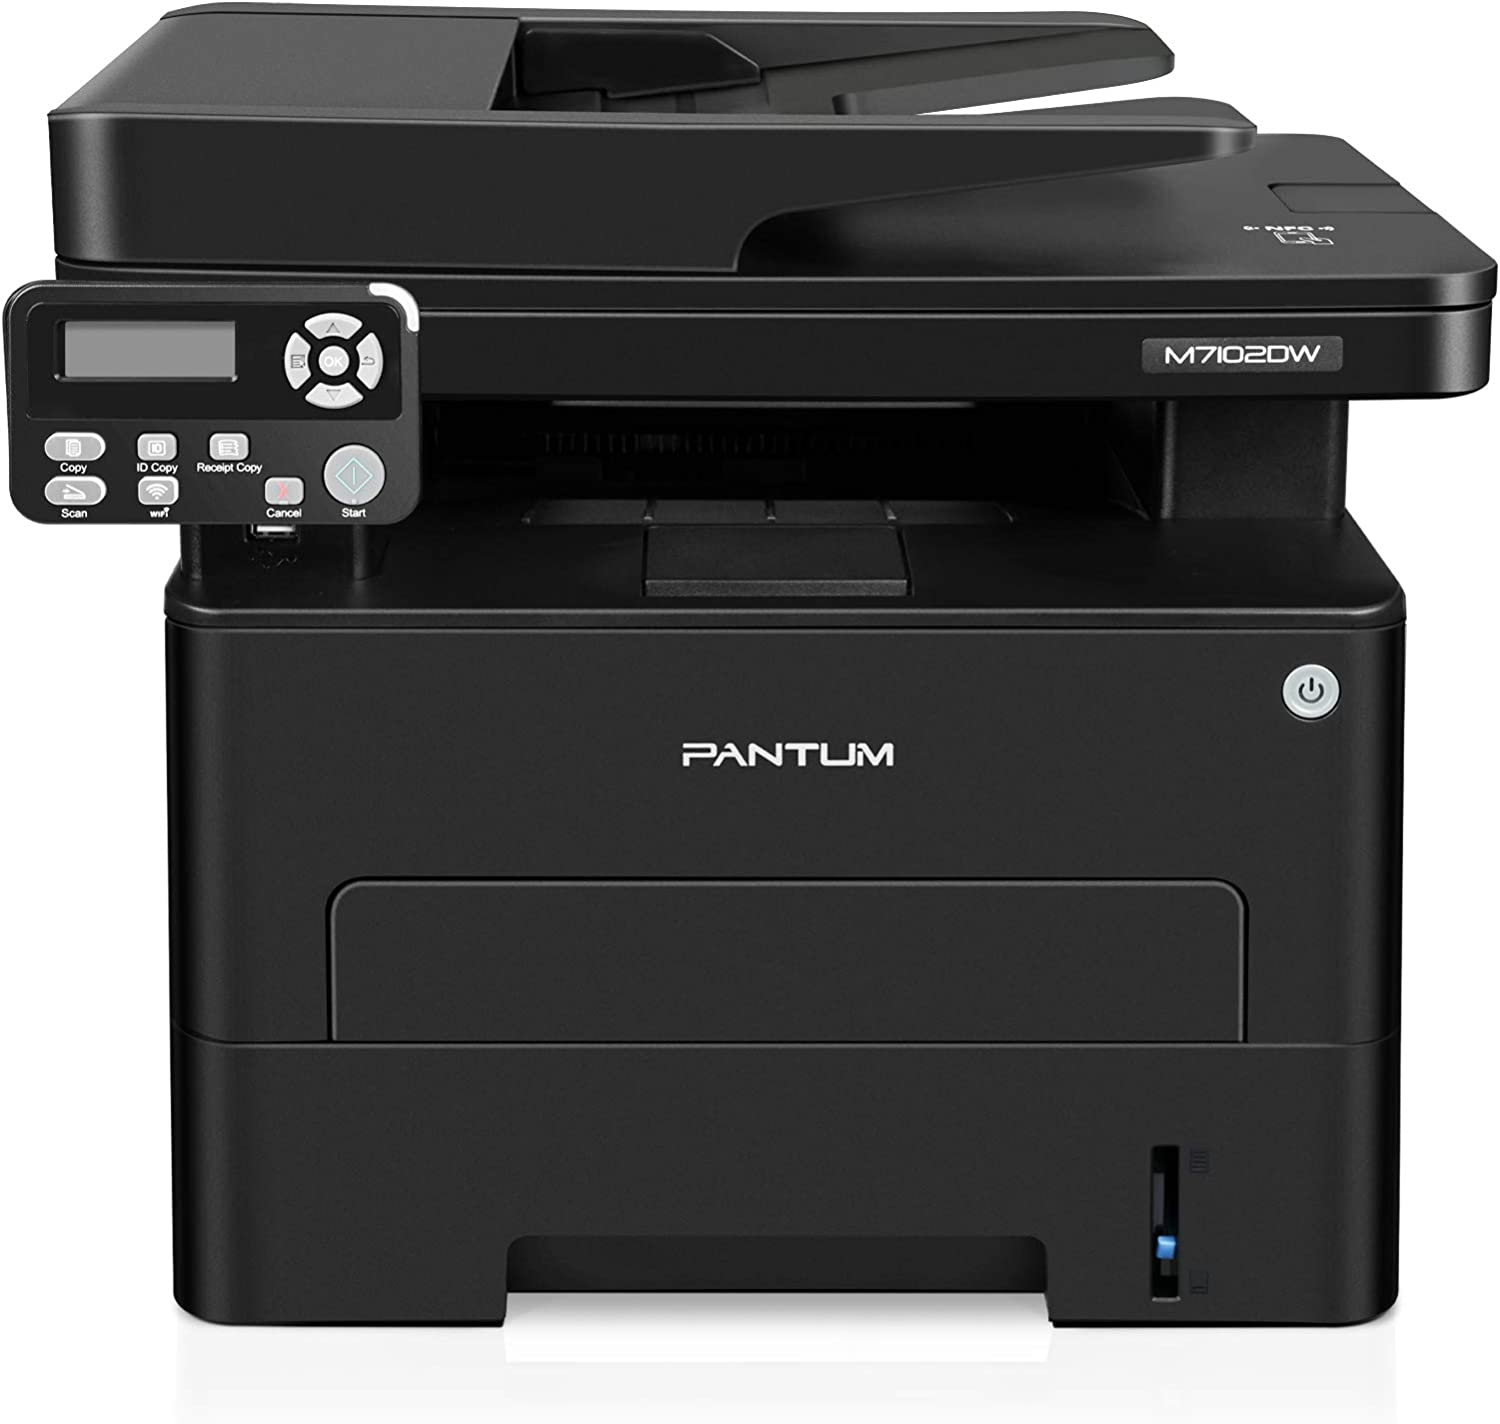 Laser Printer Scanner Copier All in One Machine, Wireless Black White Laser Printer for Home Office, Print at 35PPM, Pantum M7102DW(V4T56A)